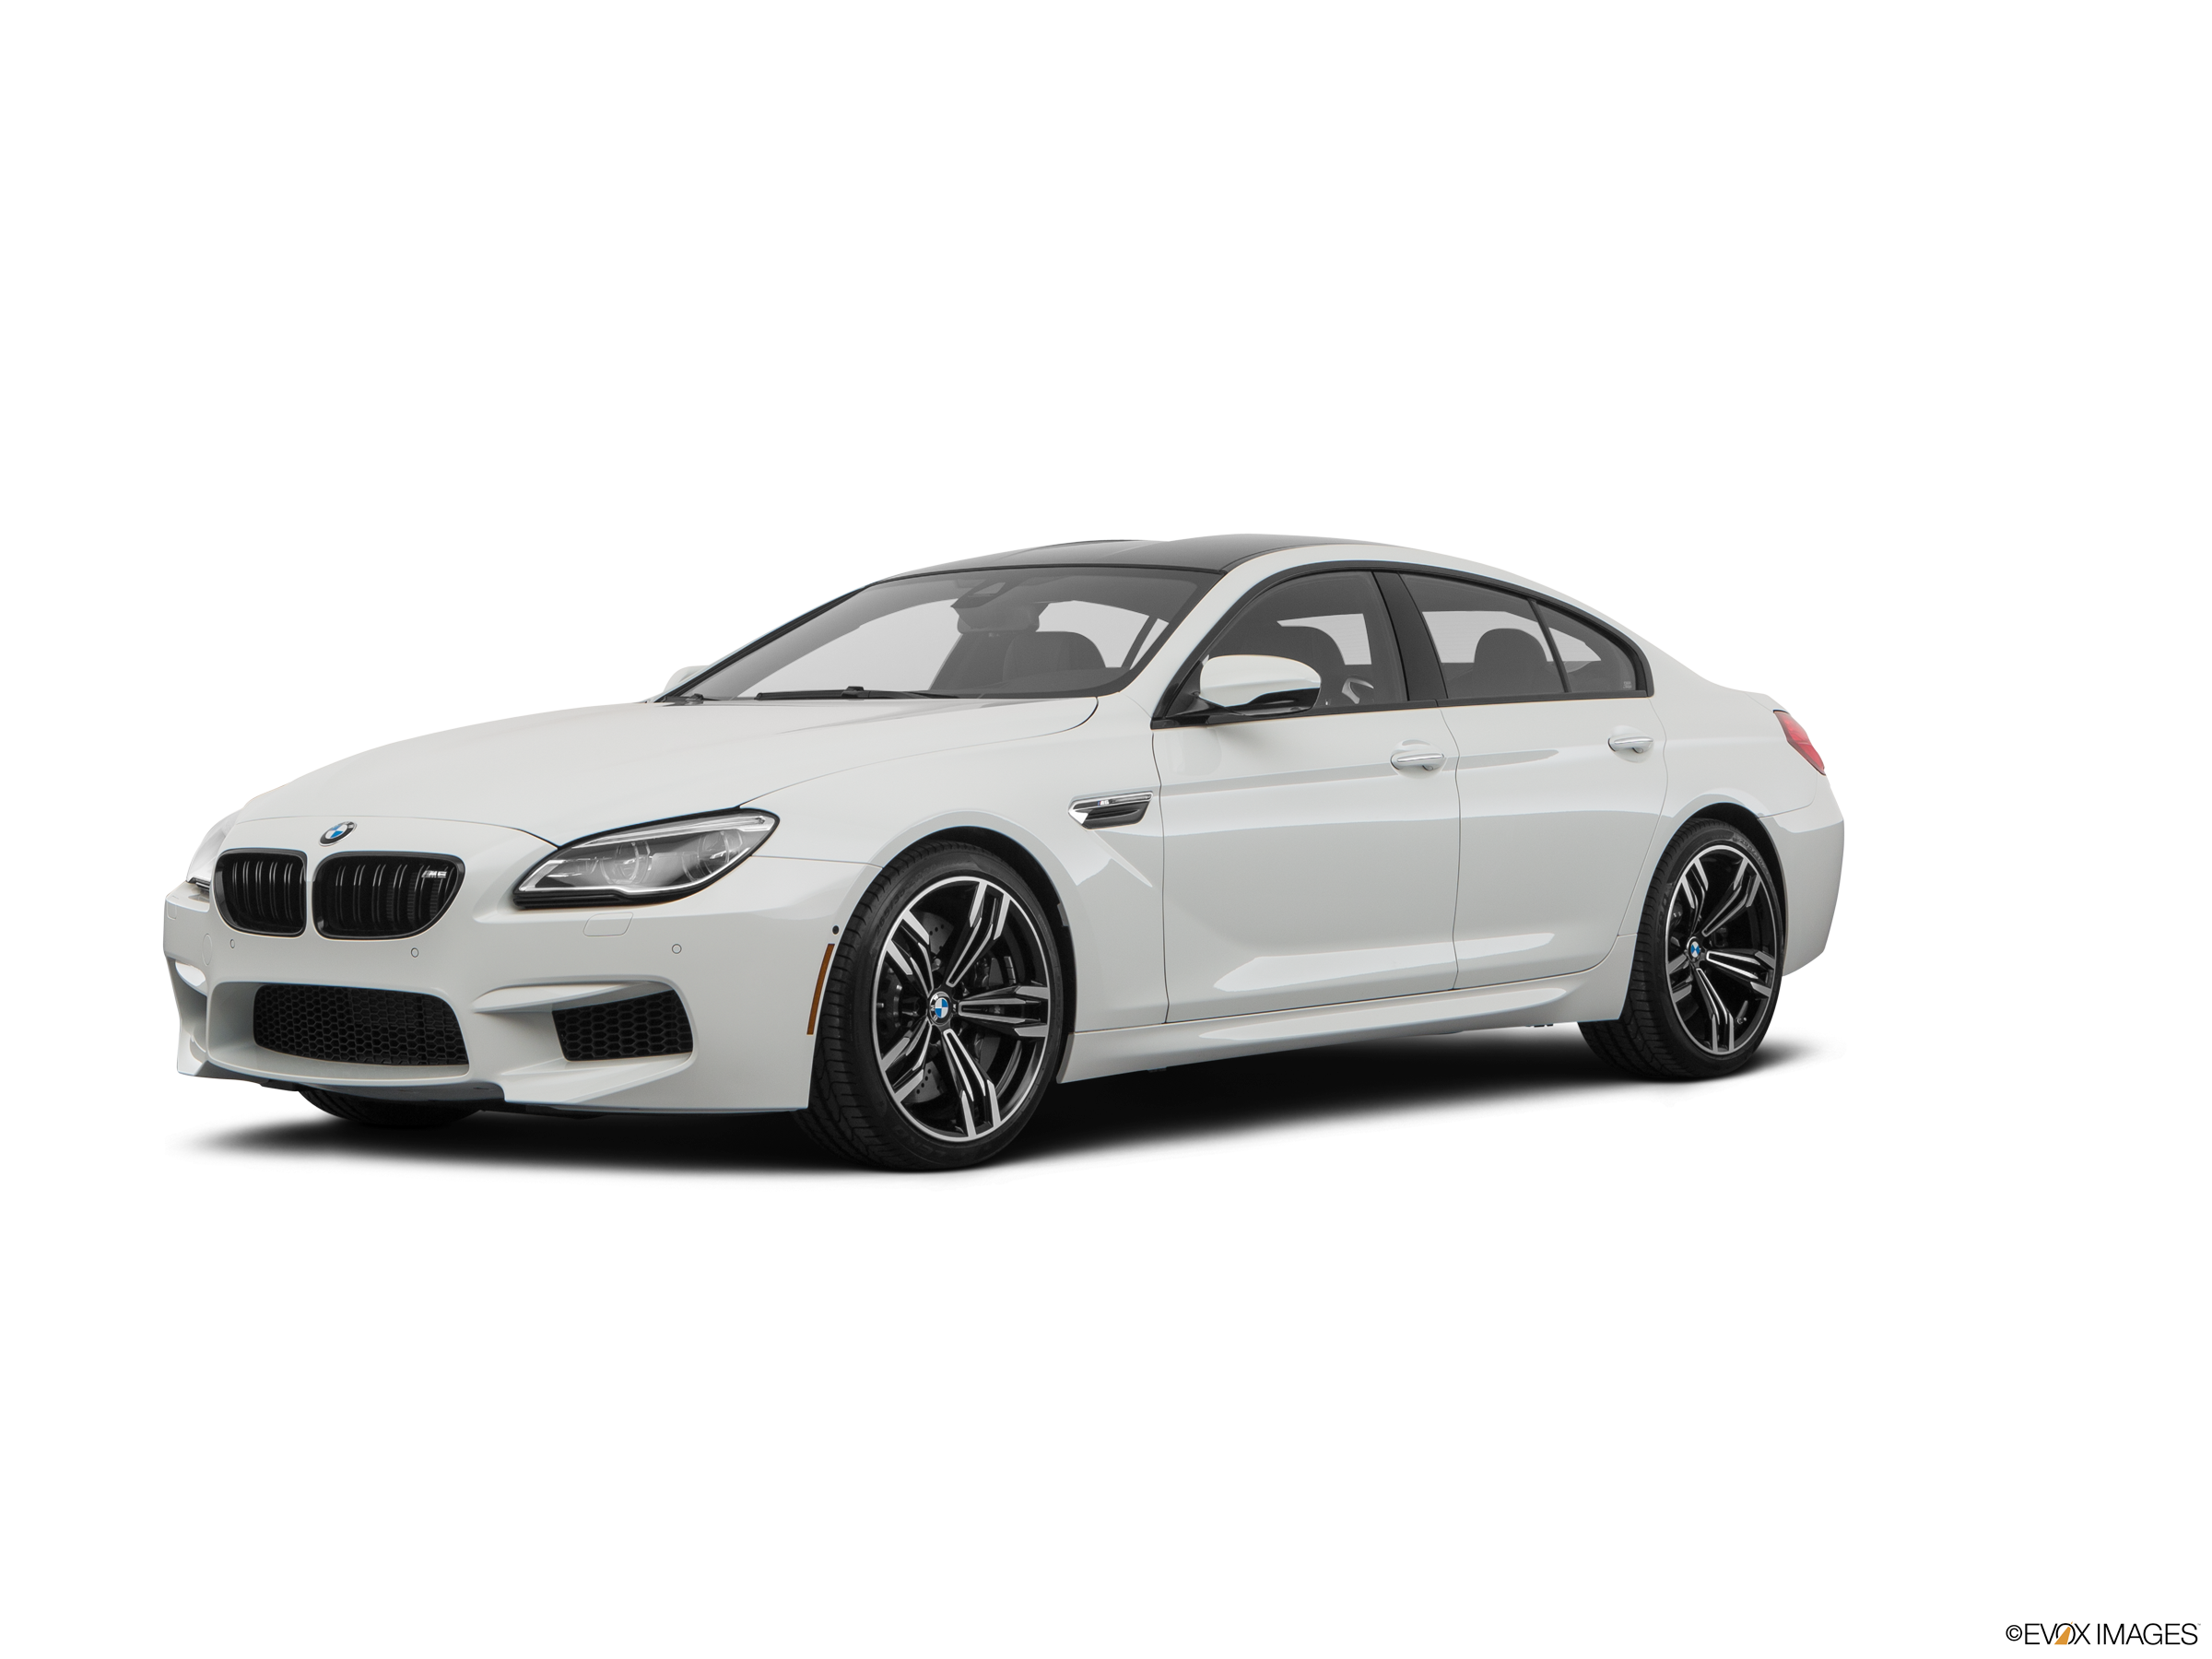 Highest Horsepower Luxury Vehicles of 2019 - 2019 BMW M6